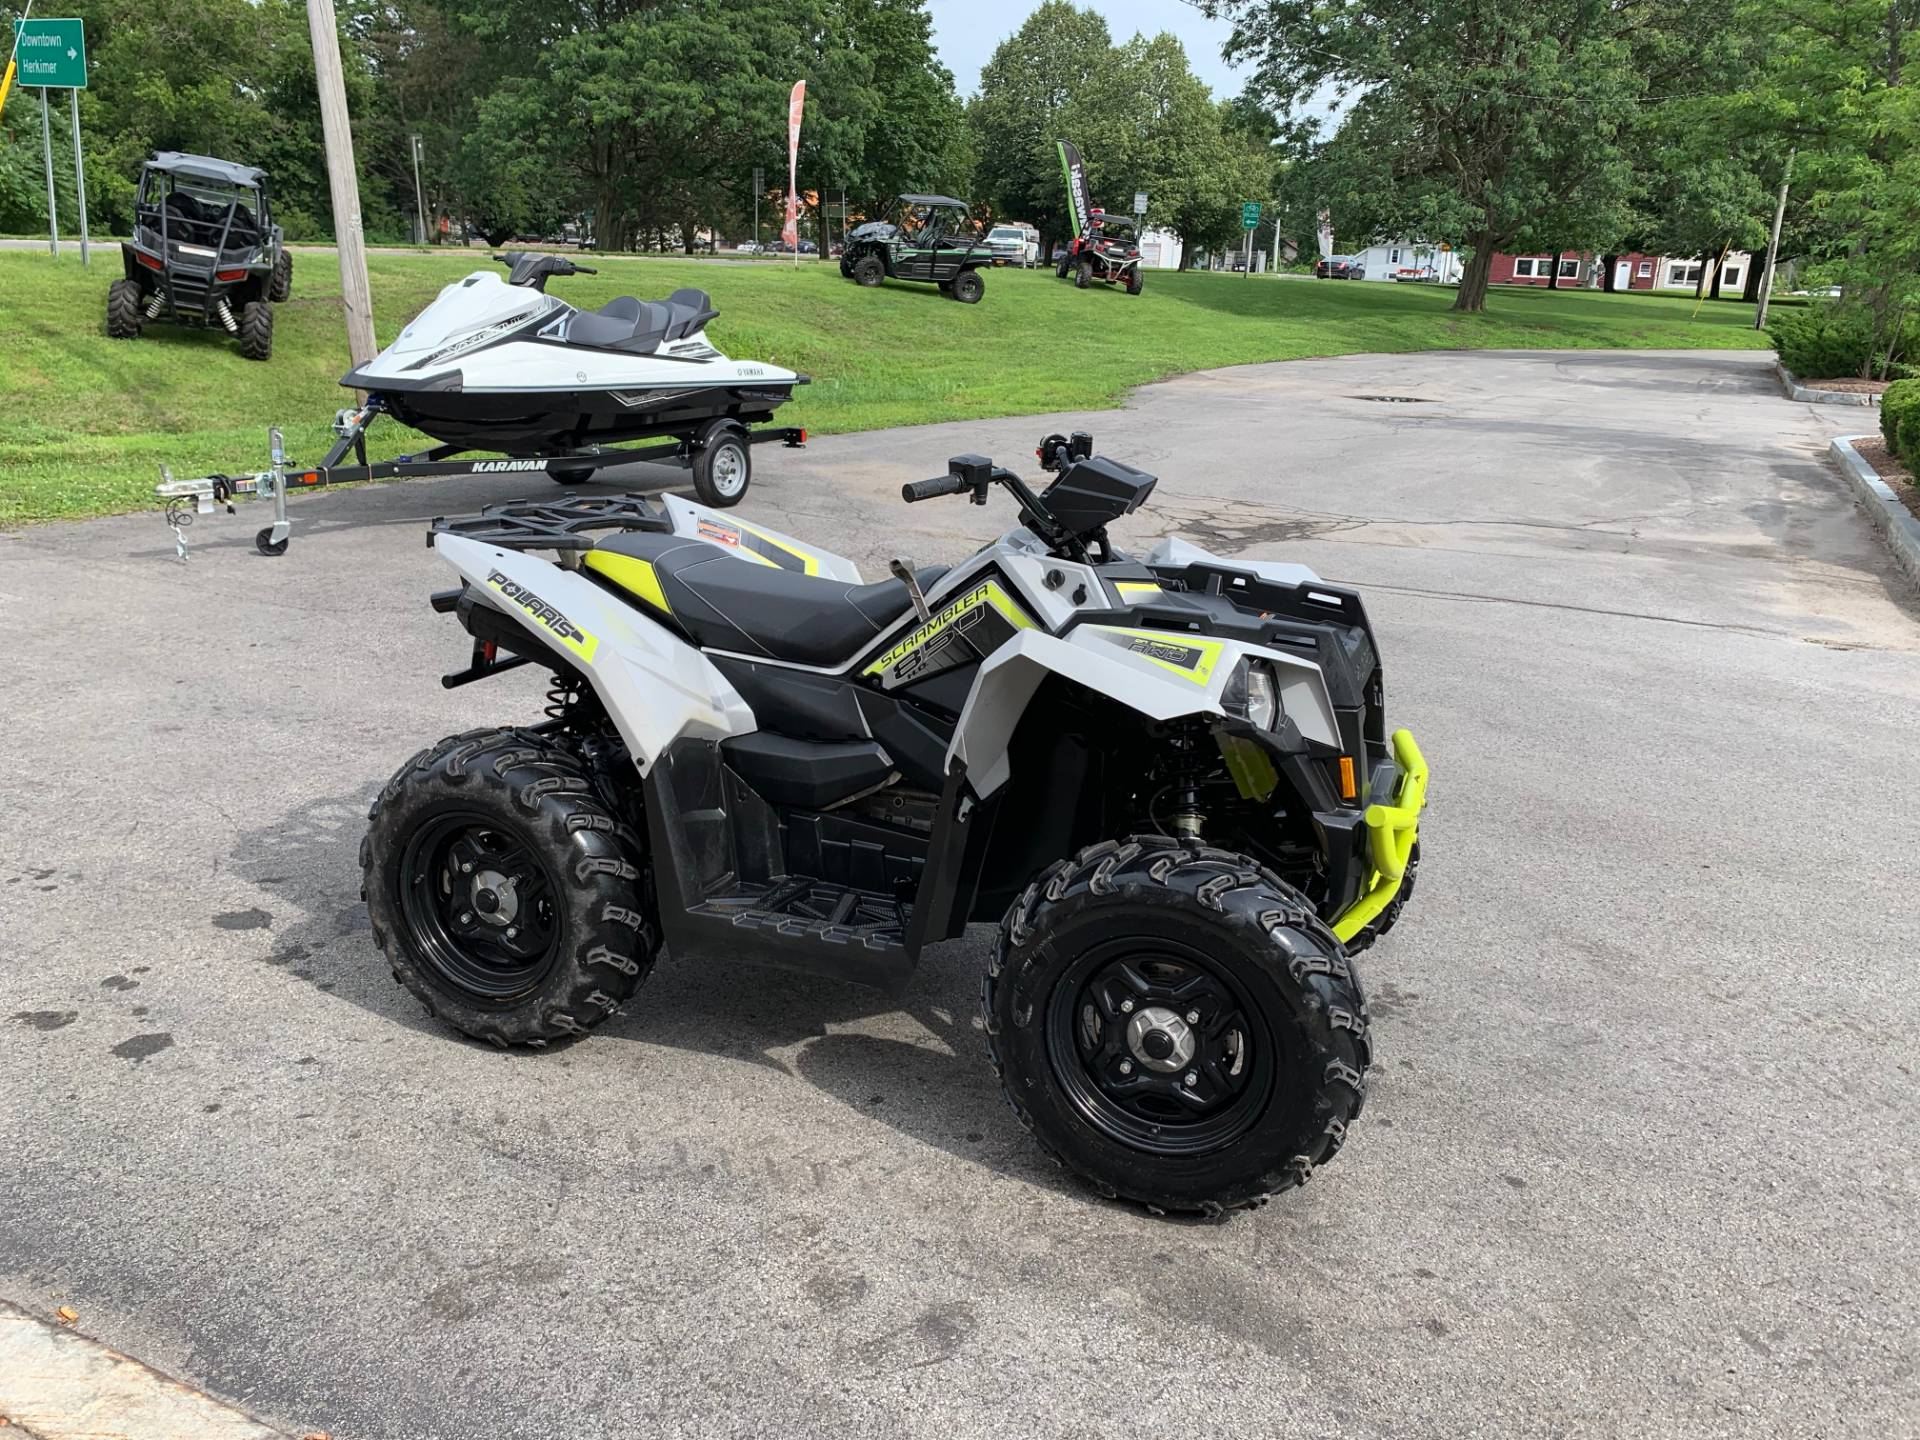 2019 Polaris Scrambler 850 in Herkimer, New York - Photo 7